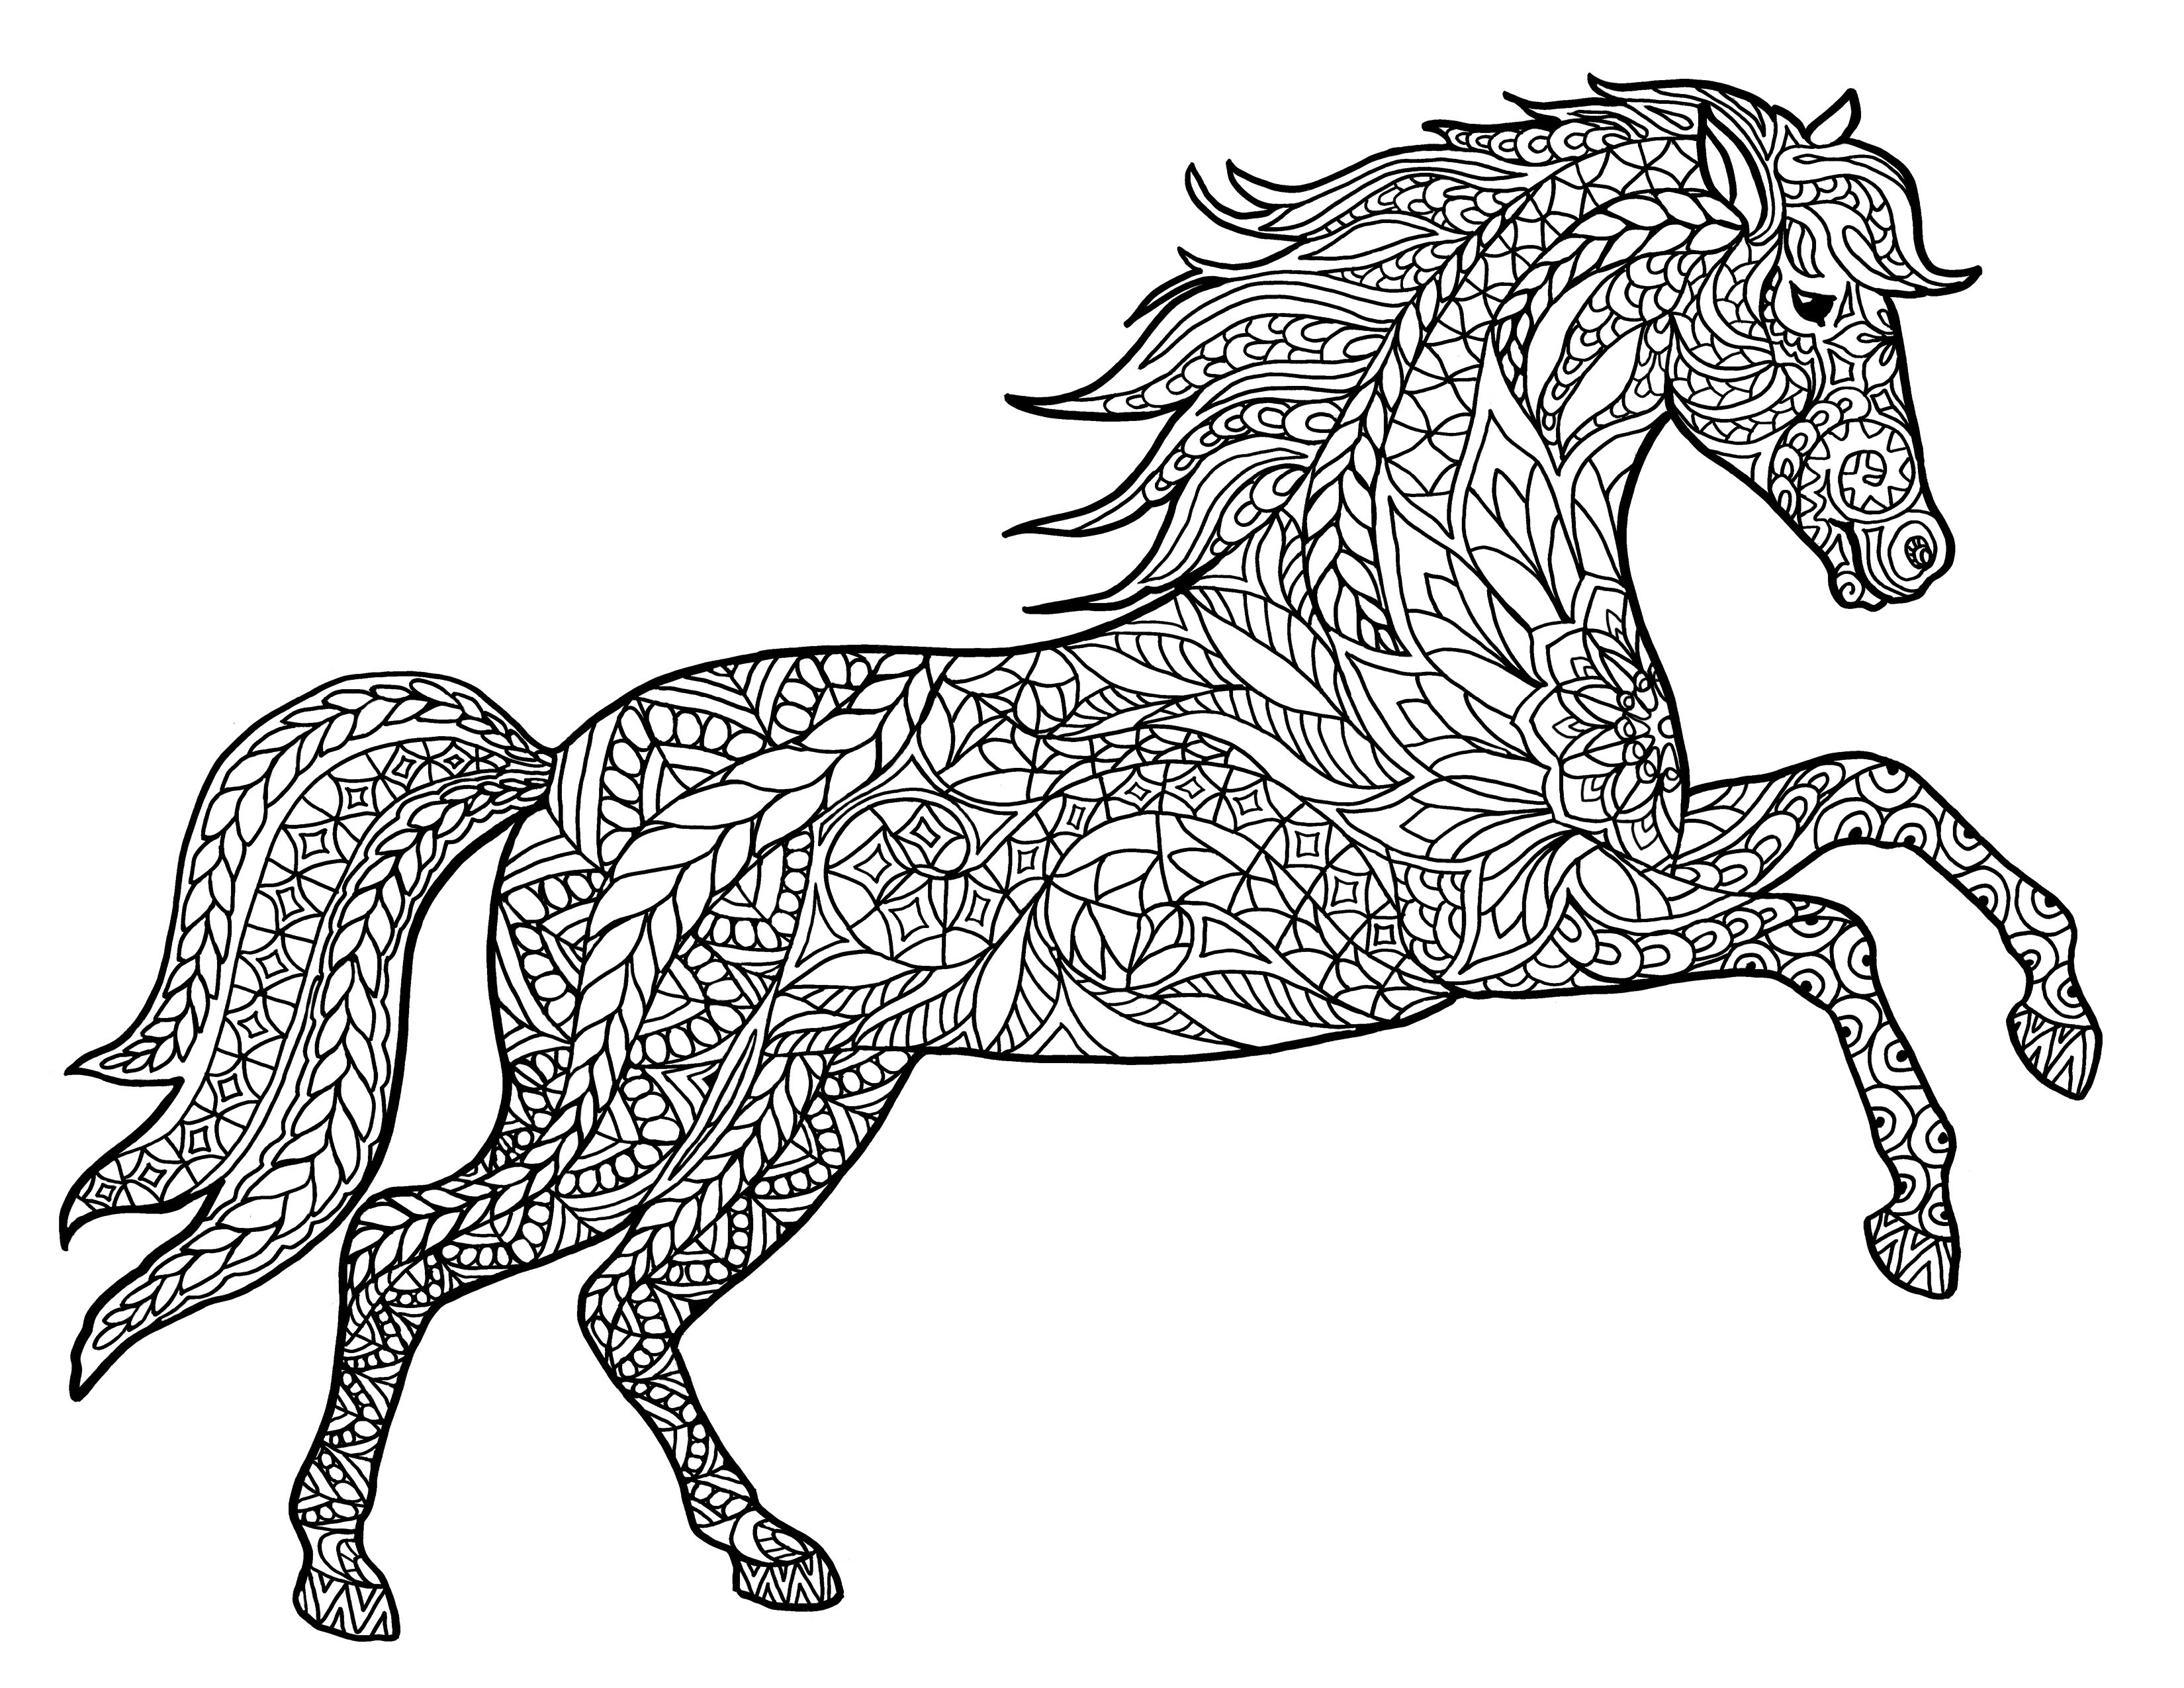 horse printables coloring pages horse printables coloring pages printables pages horse coloring